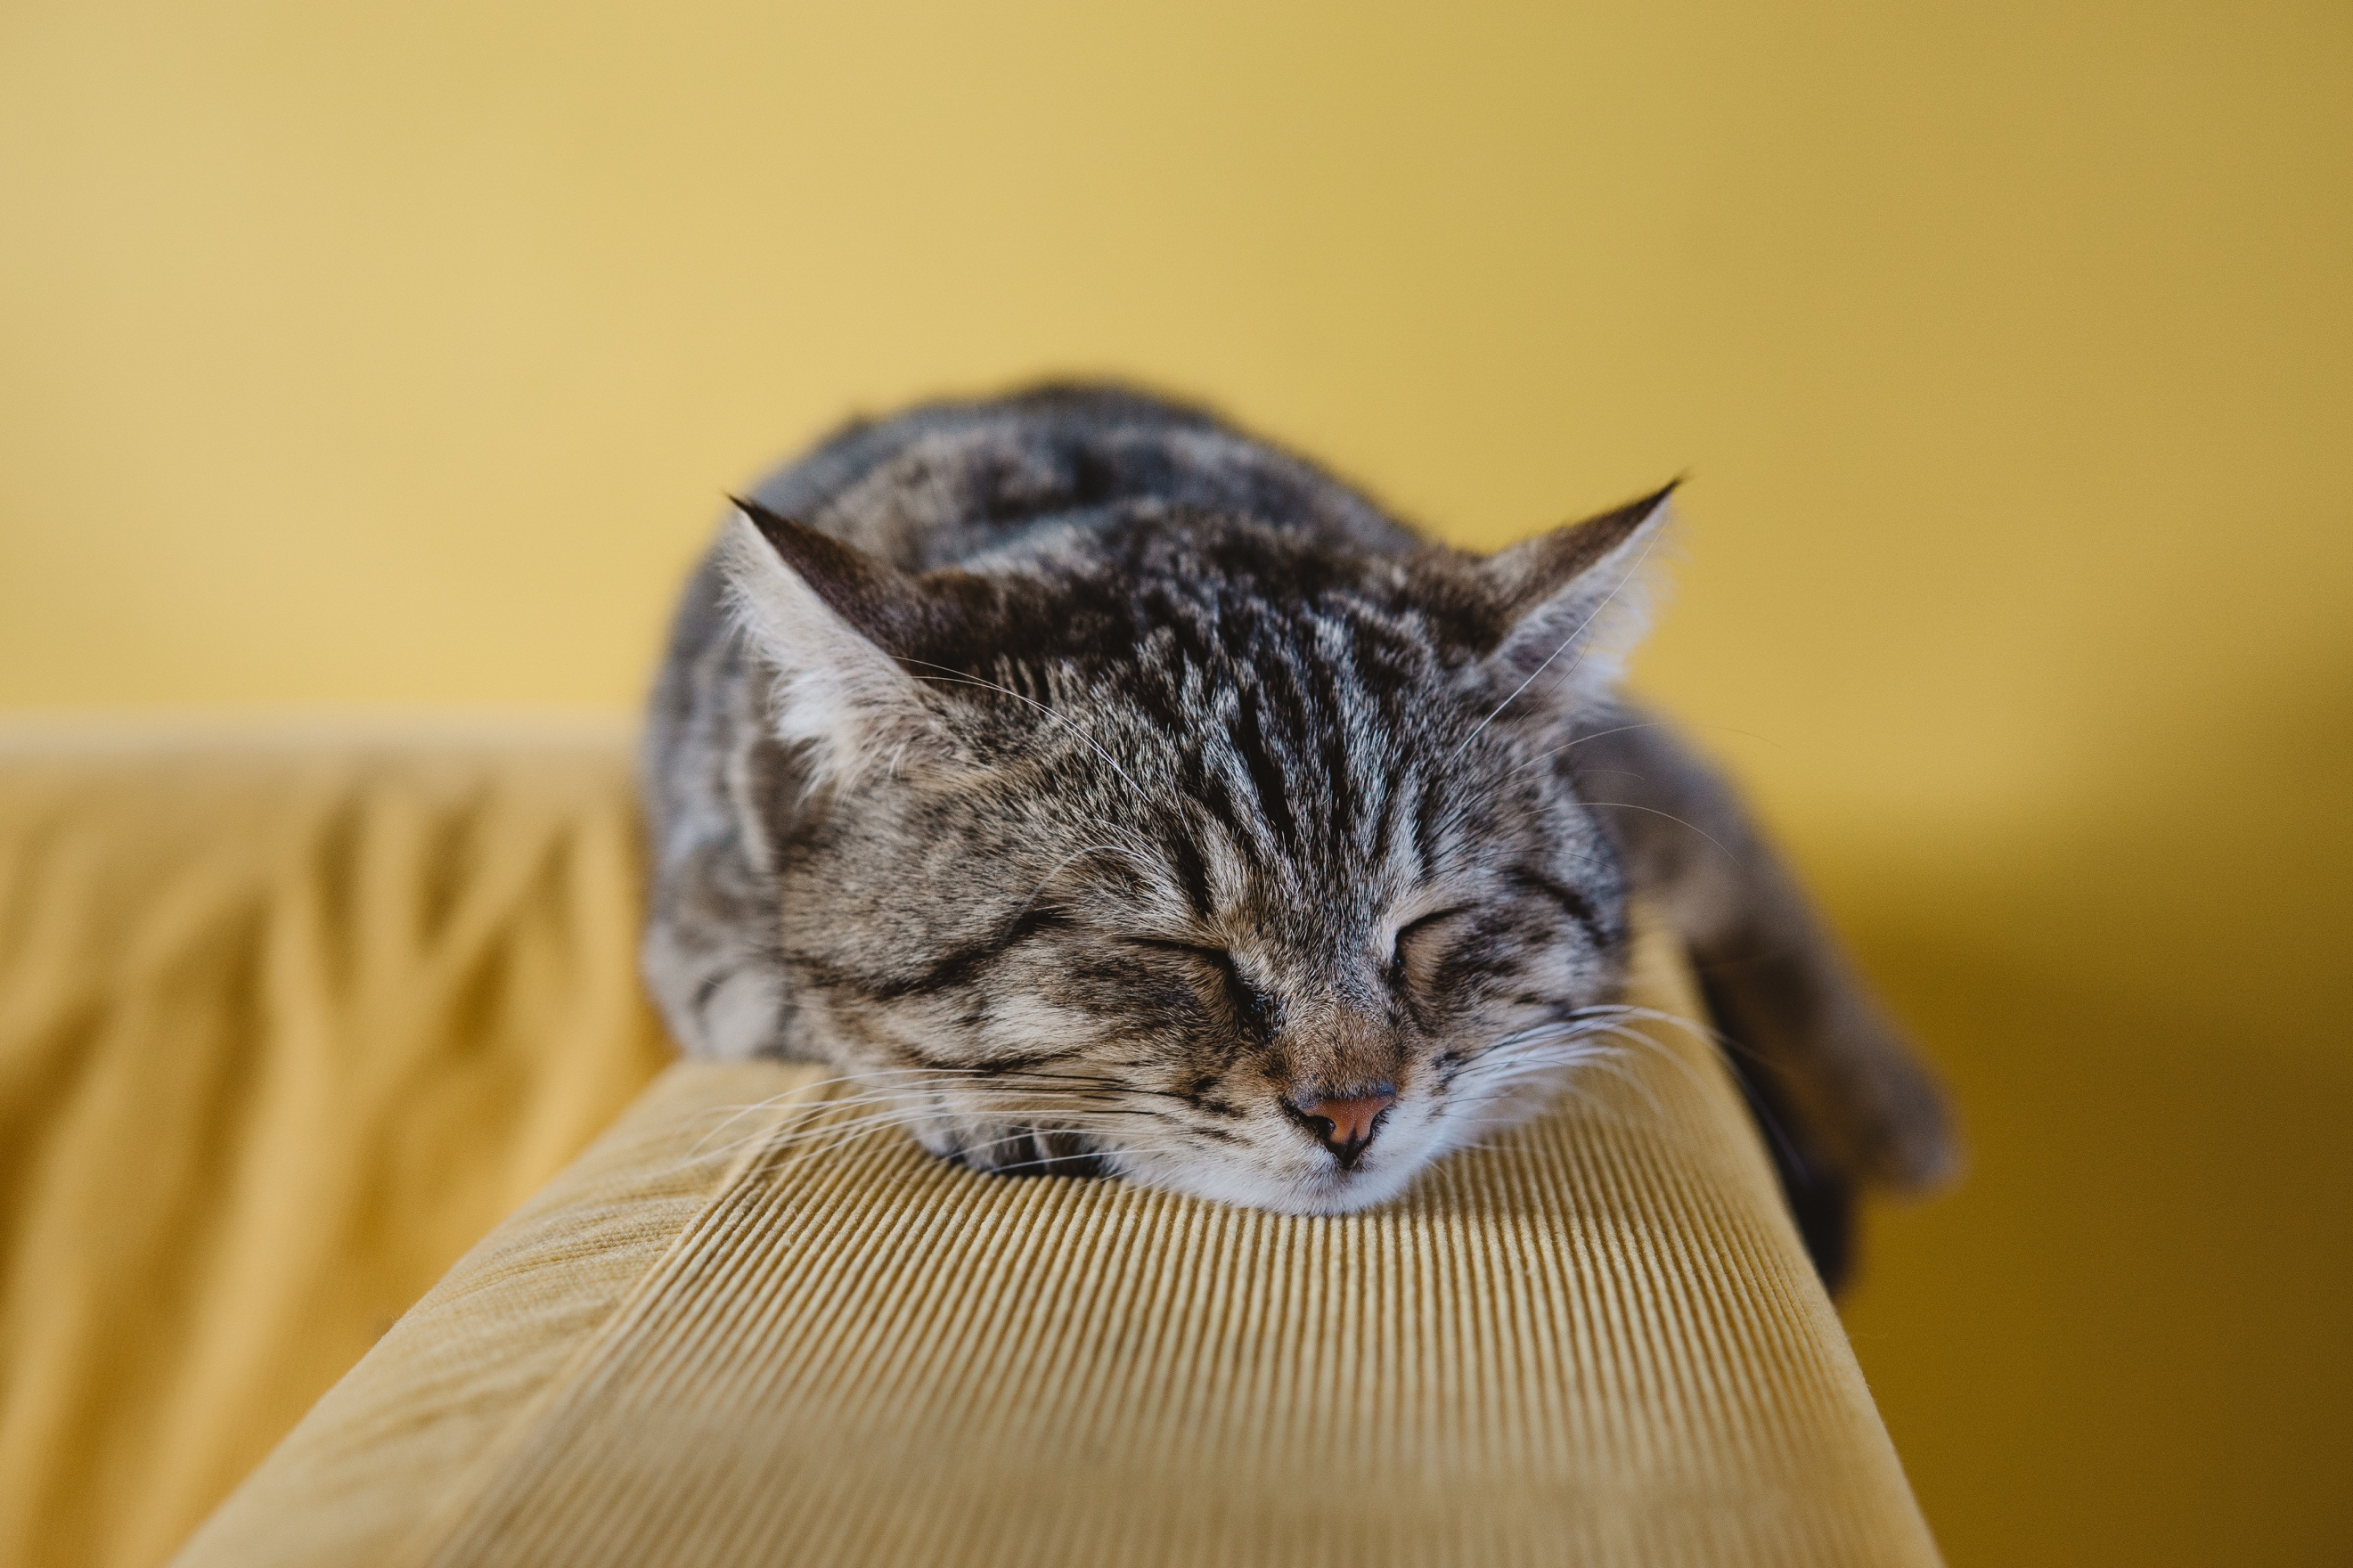 Did you know even cats can display signs of arthritic pain?